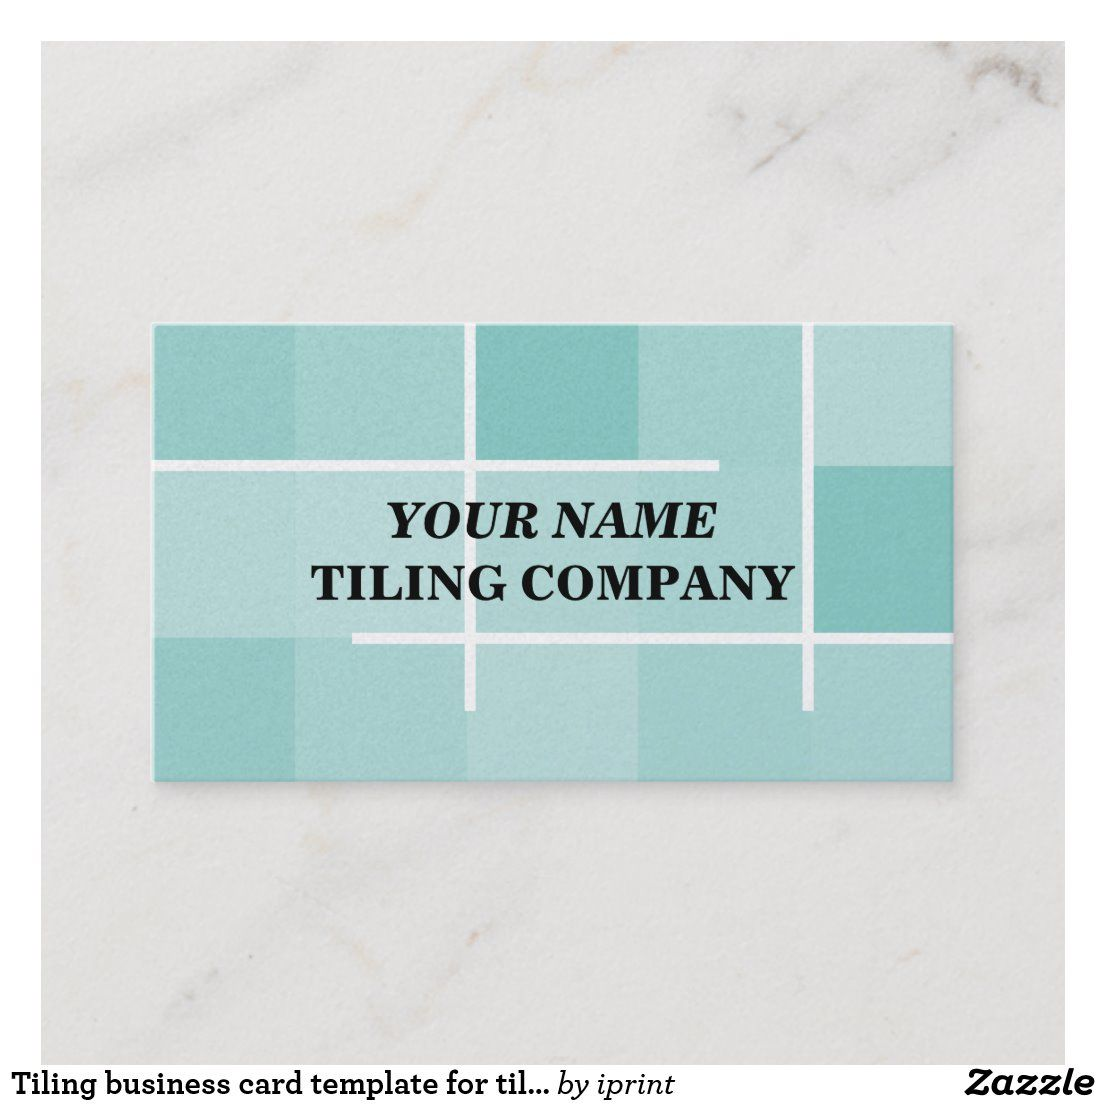 Tiling Business Card Template For Tilers Zazzle Com In 2021 Business Card Template Professional Business Cards Templates Card Template